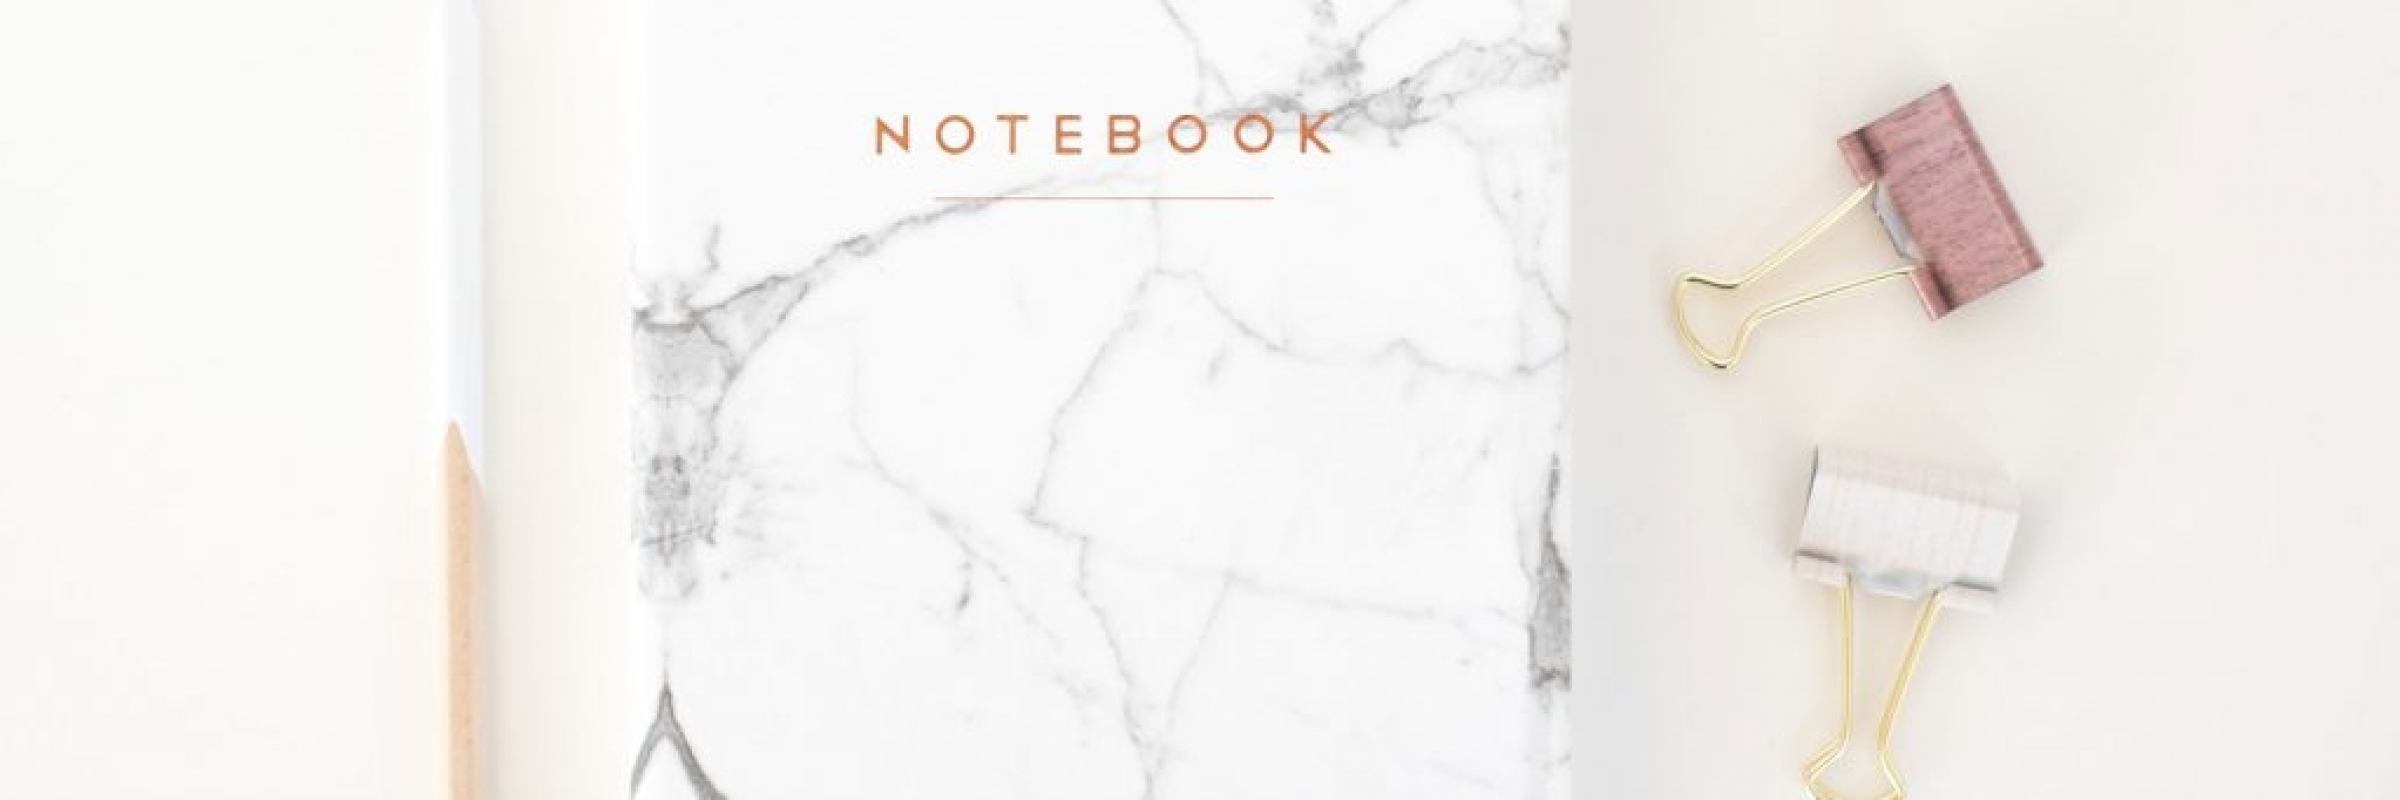 Bujoncoffee-notebook